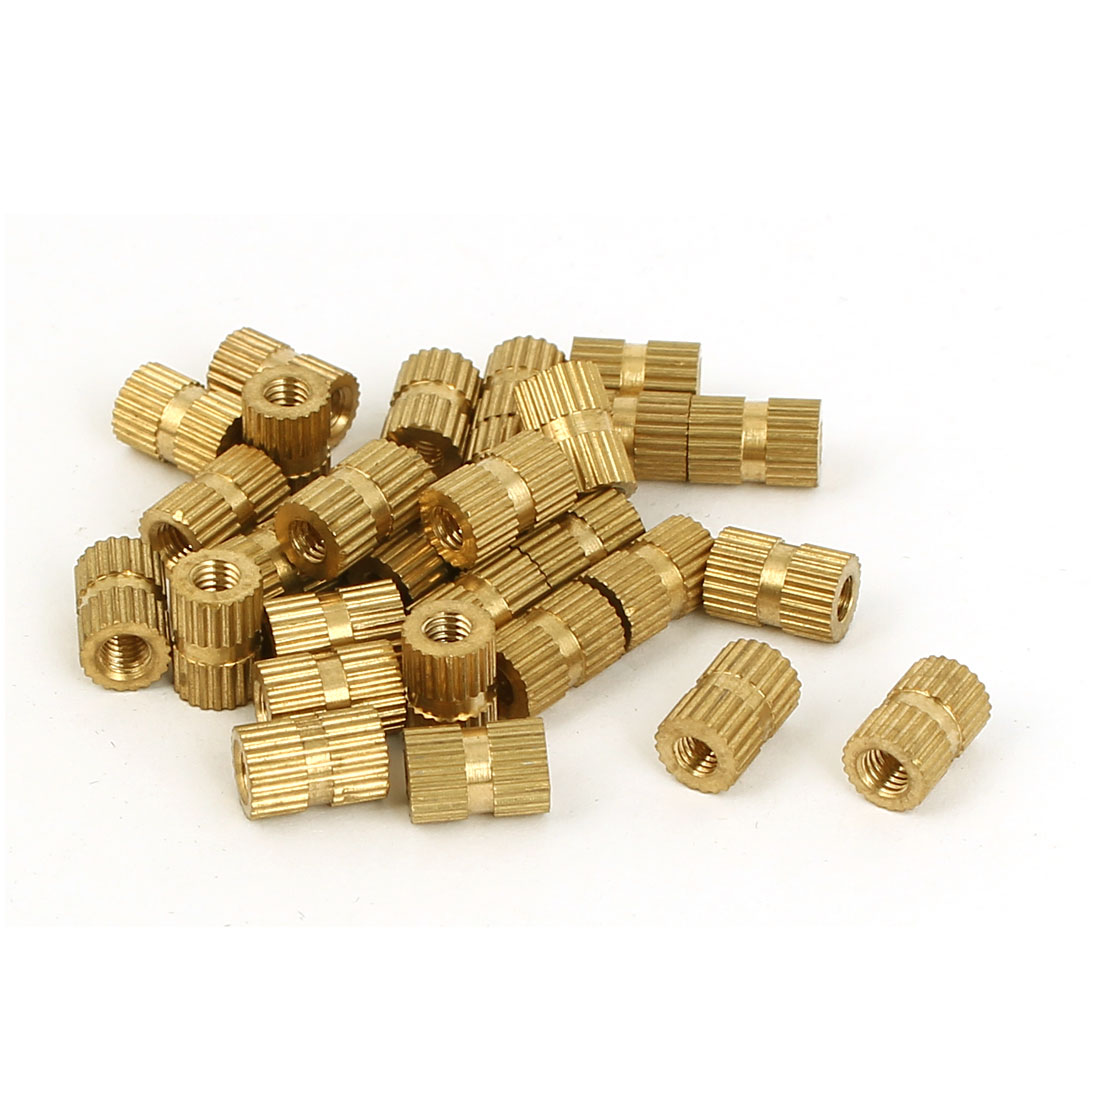 M3 x 5mm x 8mm Female Threaded Insert Embedded Brass Knurled Nuts Gold Tone 30 Pcs